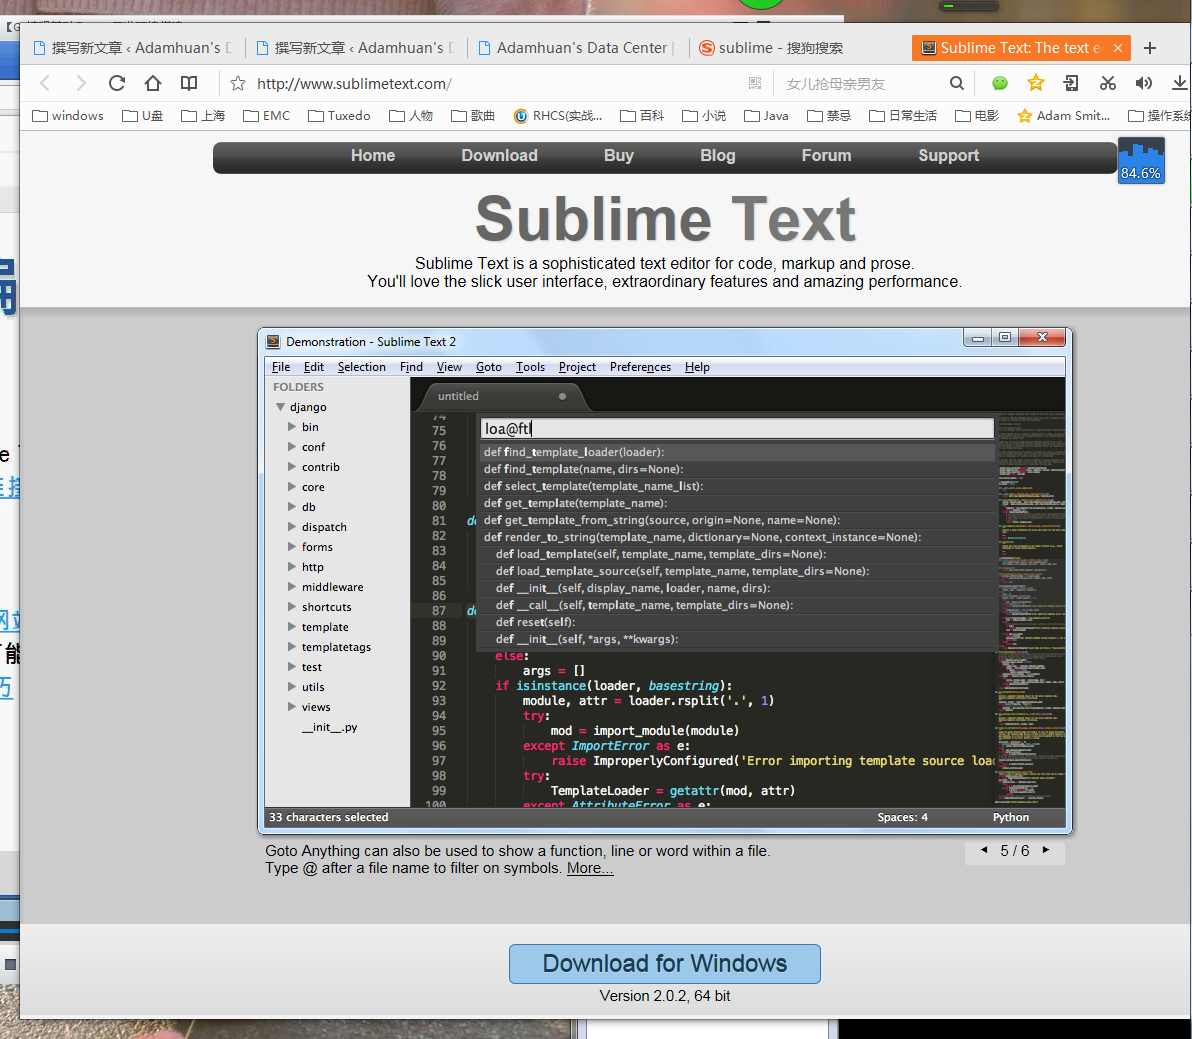 sublime_text_website_first